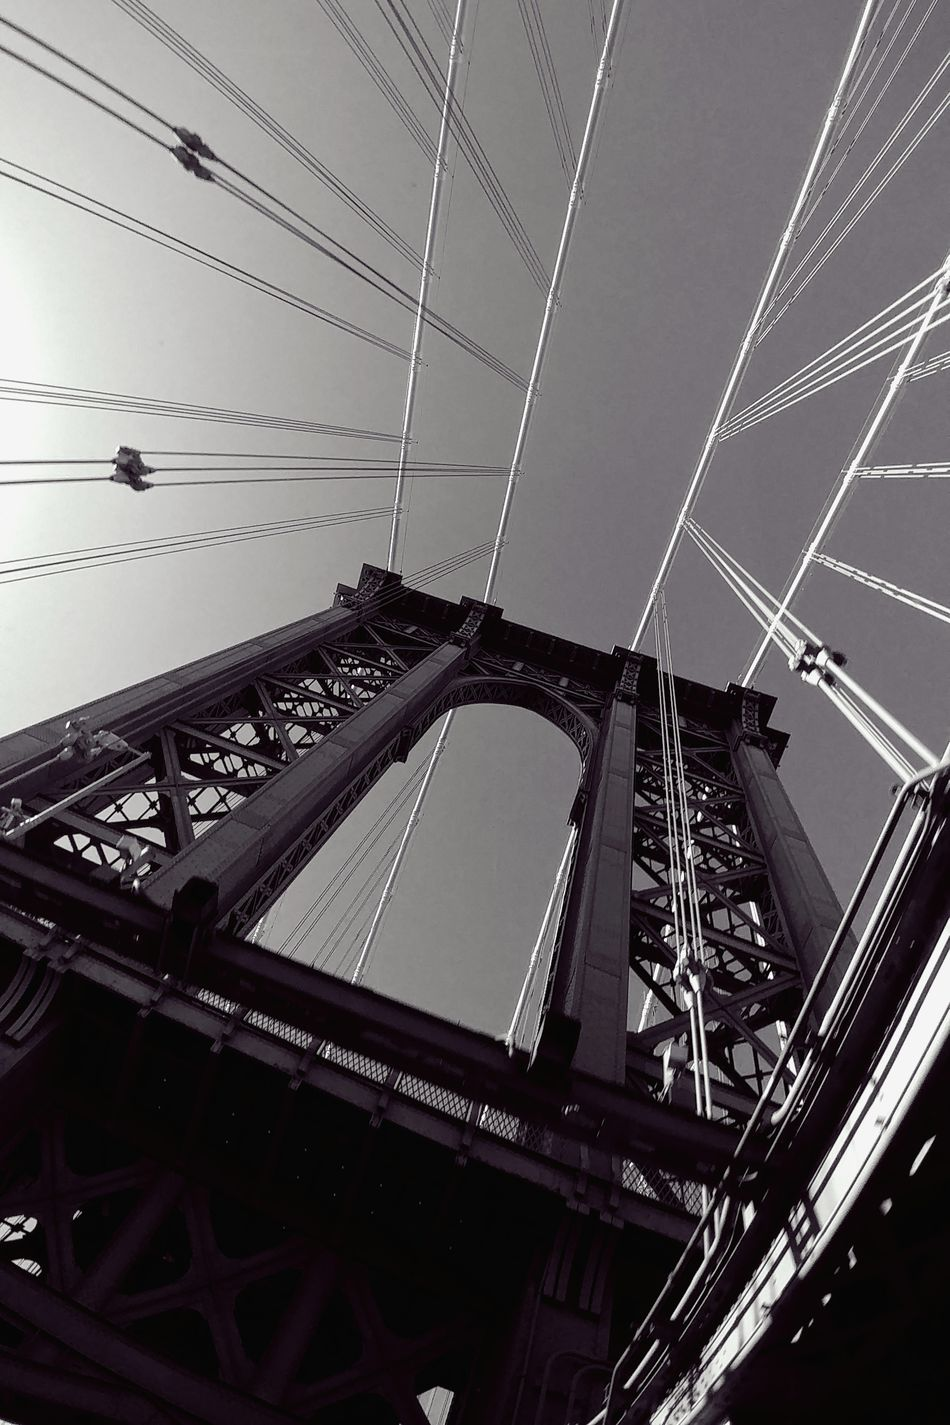 Low Angle View Cable Built Structure No People Technology Outdoors Sky Architecture Day Manhattanbridge Drivebyphotography City Life AndroidPhotography Architecture Suspension Bridge Travel Destinations Bridge Photography Nyphotographer NYC NYC Photography